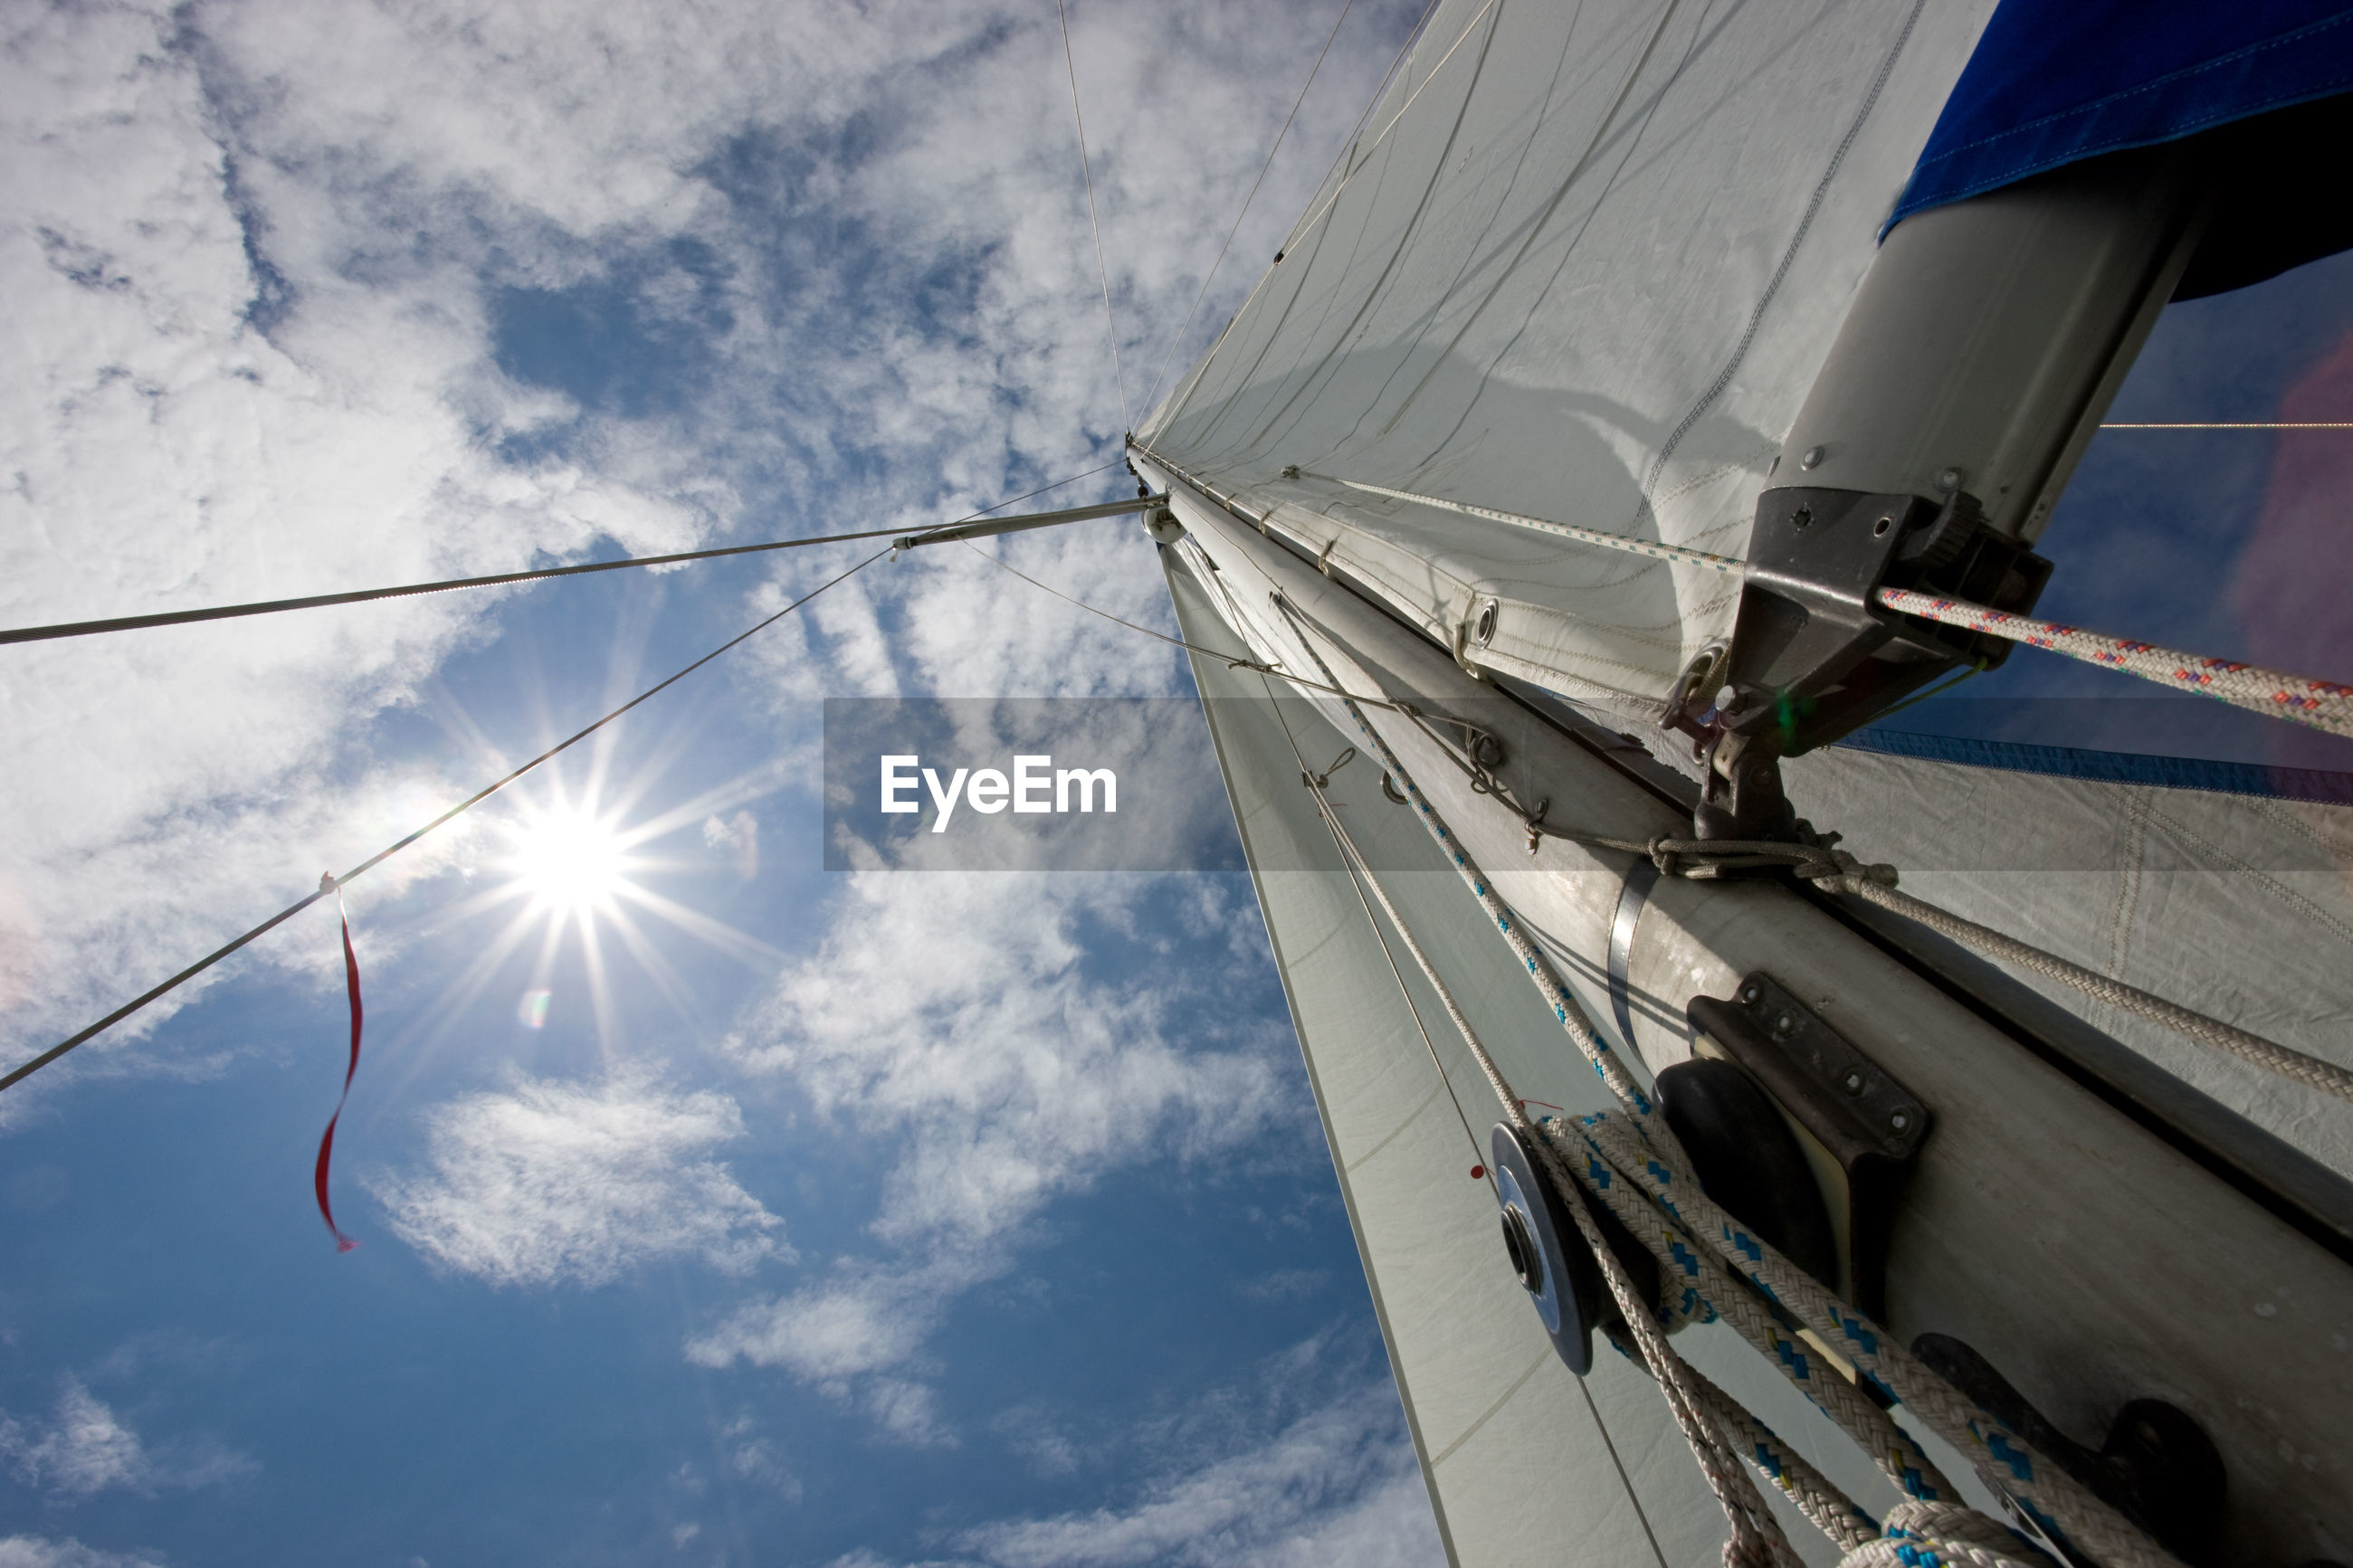 Cropped image of boat against sky